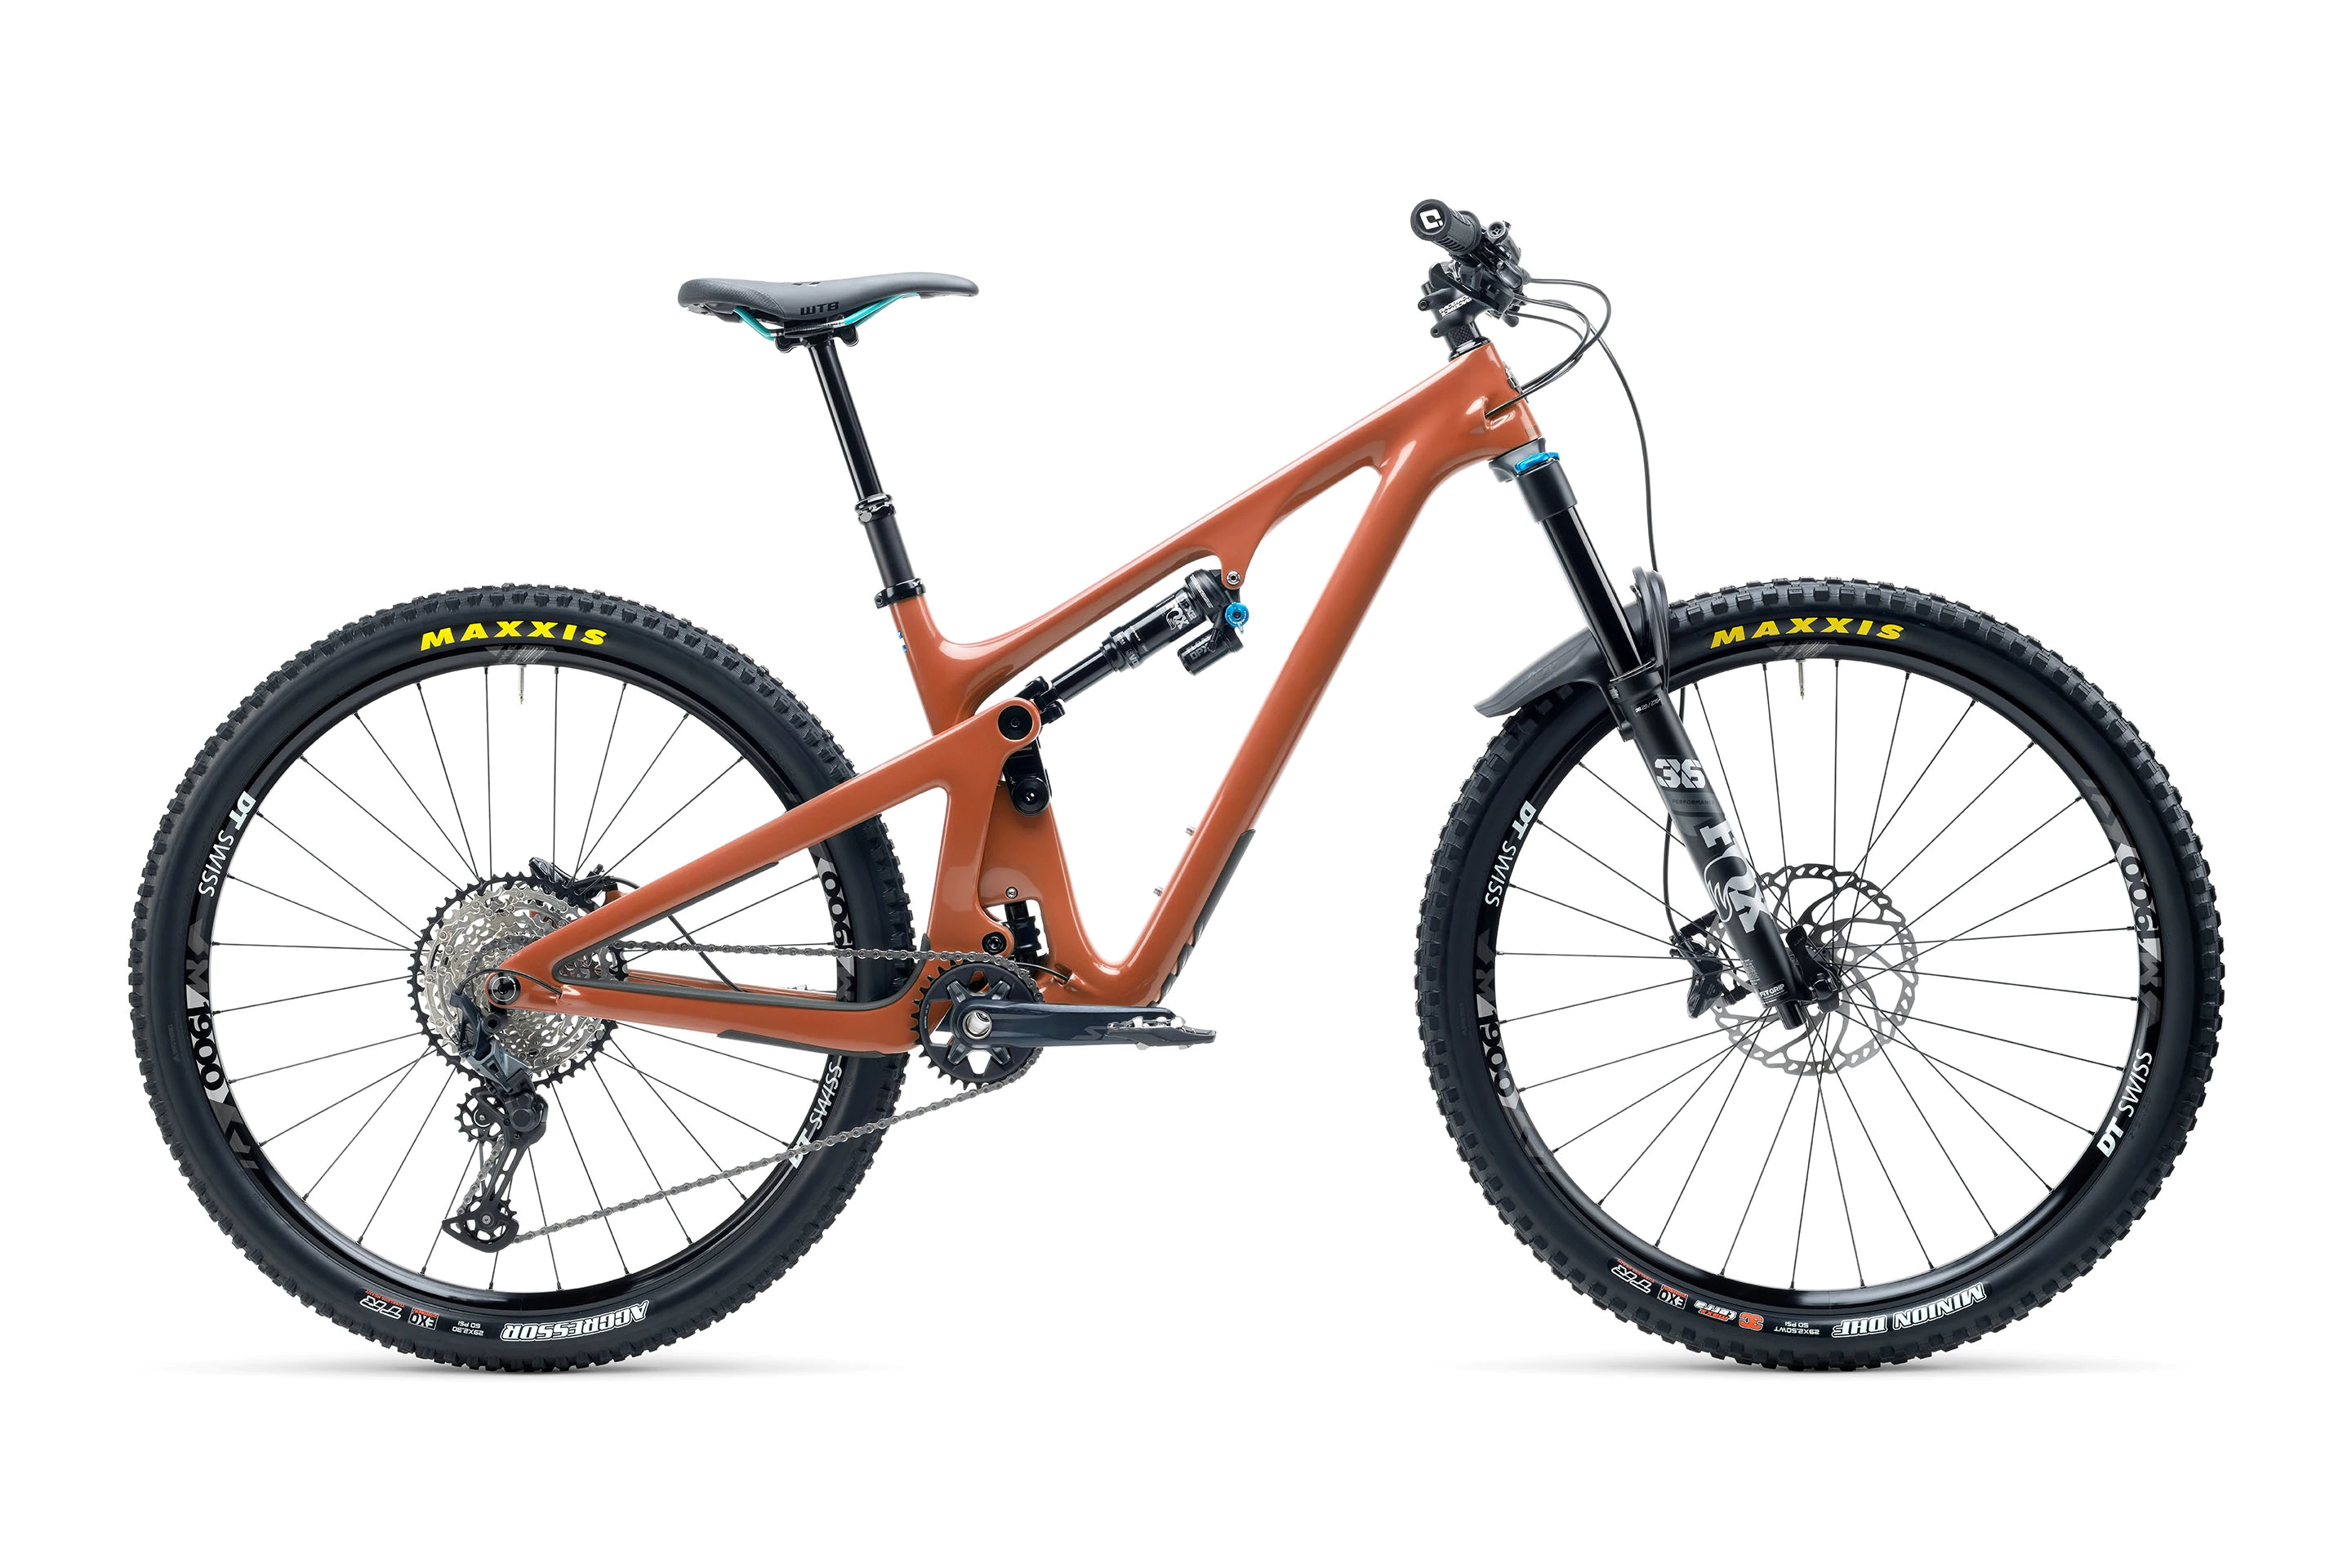 Yeti SB130 C2 Series GX Eagle 12spd Carbon Mountain Bike 2021 Brick